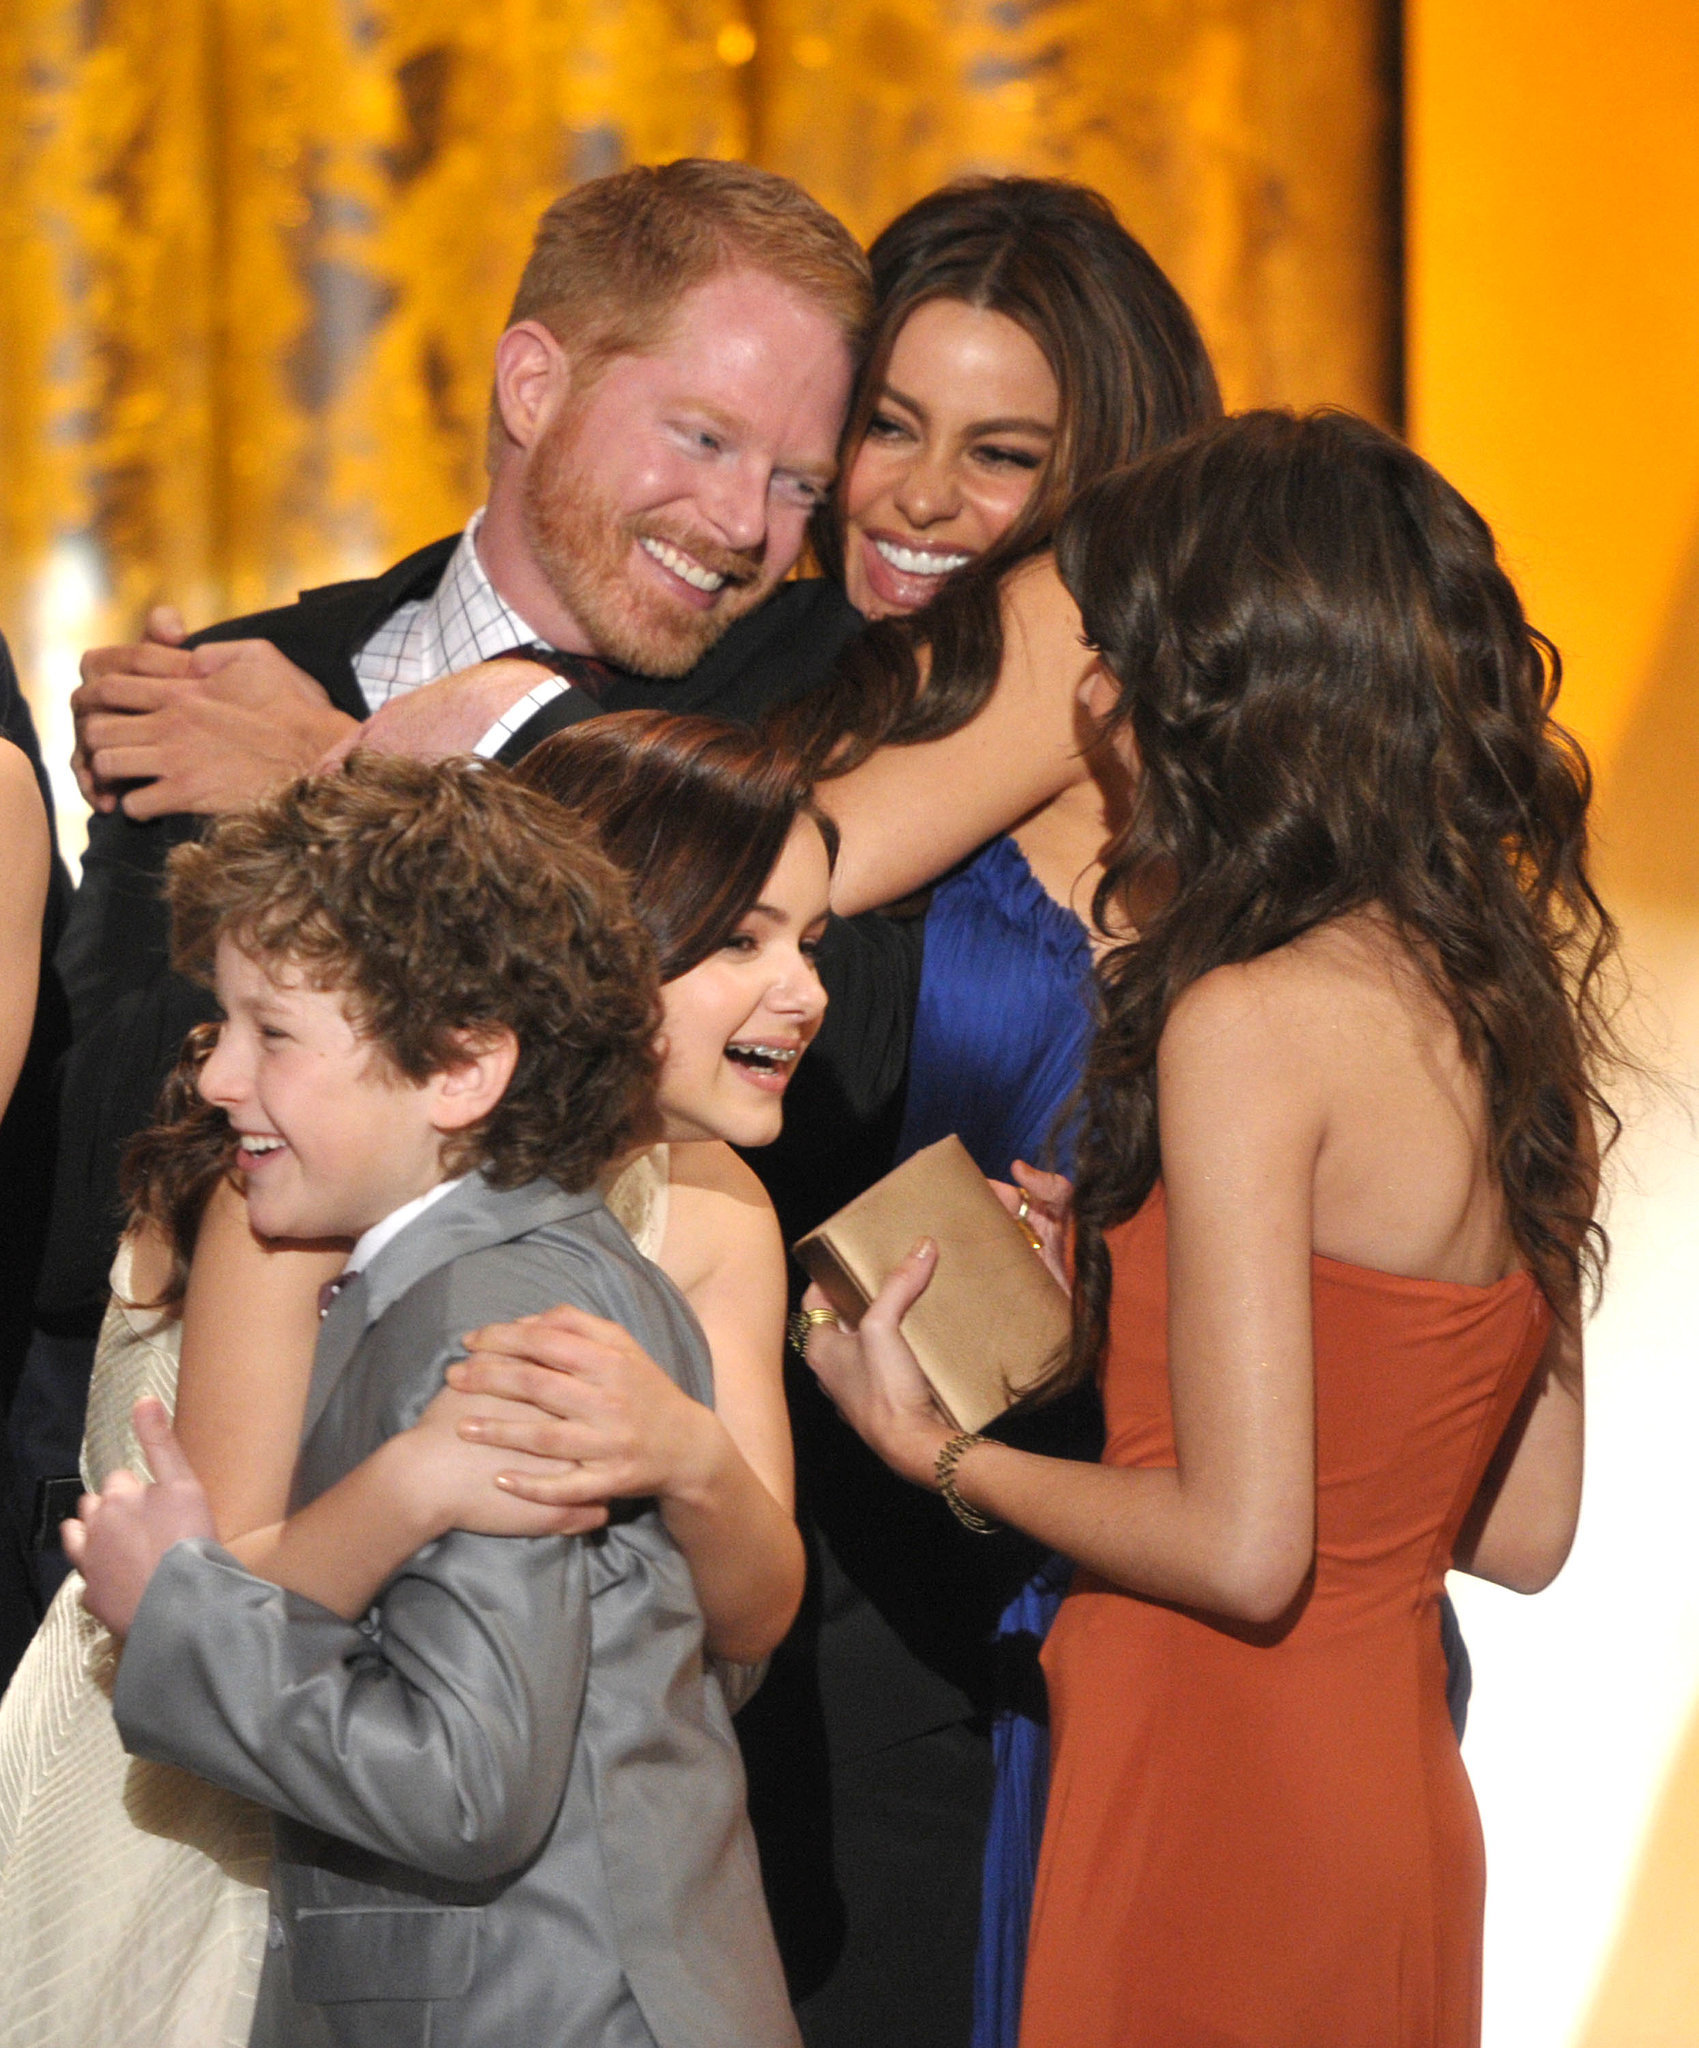 The cast of Modern Family celebrated their win for outstanding performance by an ensemble in a comedy series in 2011.